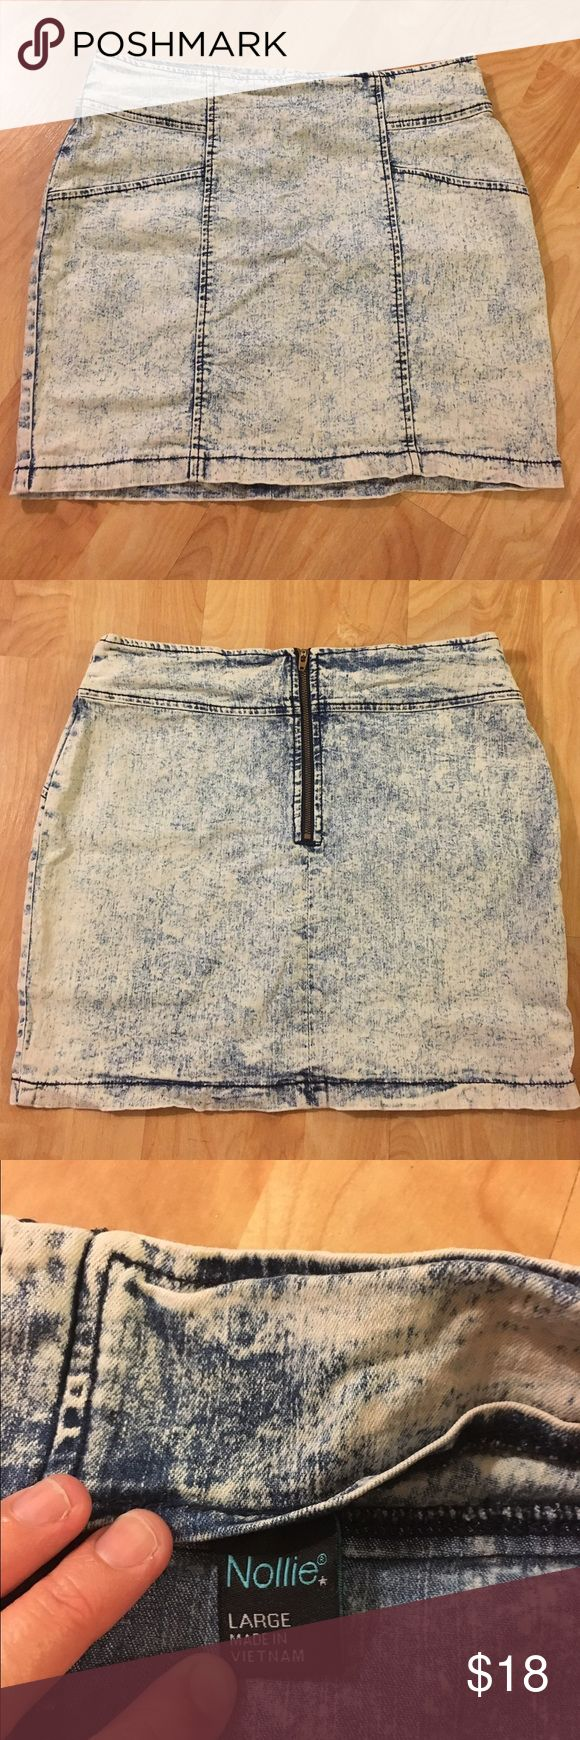 """Nollie blue & white acid wash bodycon pencil skirt Gorgeous skirt with lots of stretch! Super soft fabric and in great condition. 14.5"""" across waist unstretched (29"""" total) and 15"""" long. Size Large. Nollie brand from PacSun. A great addition to any closet! Nollie Skirts Pencil"""